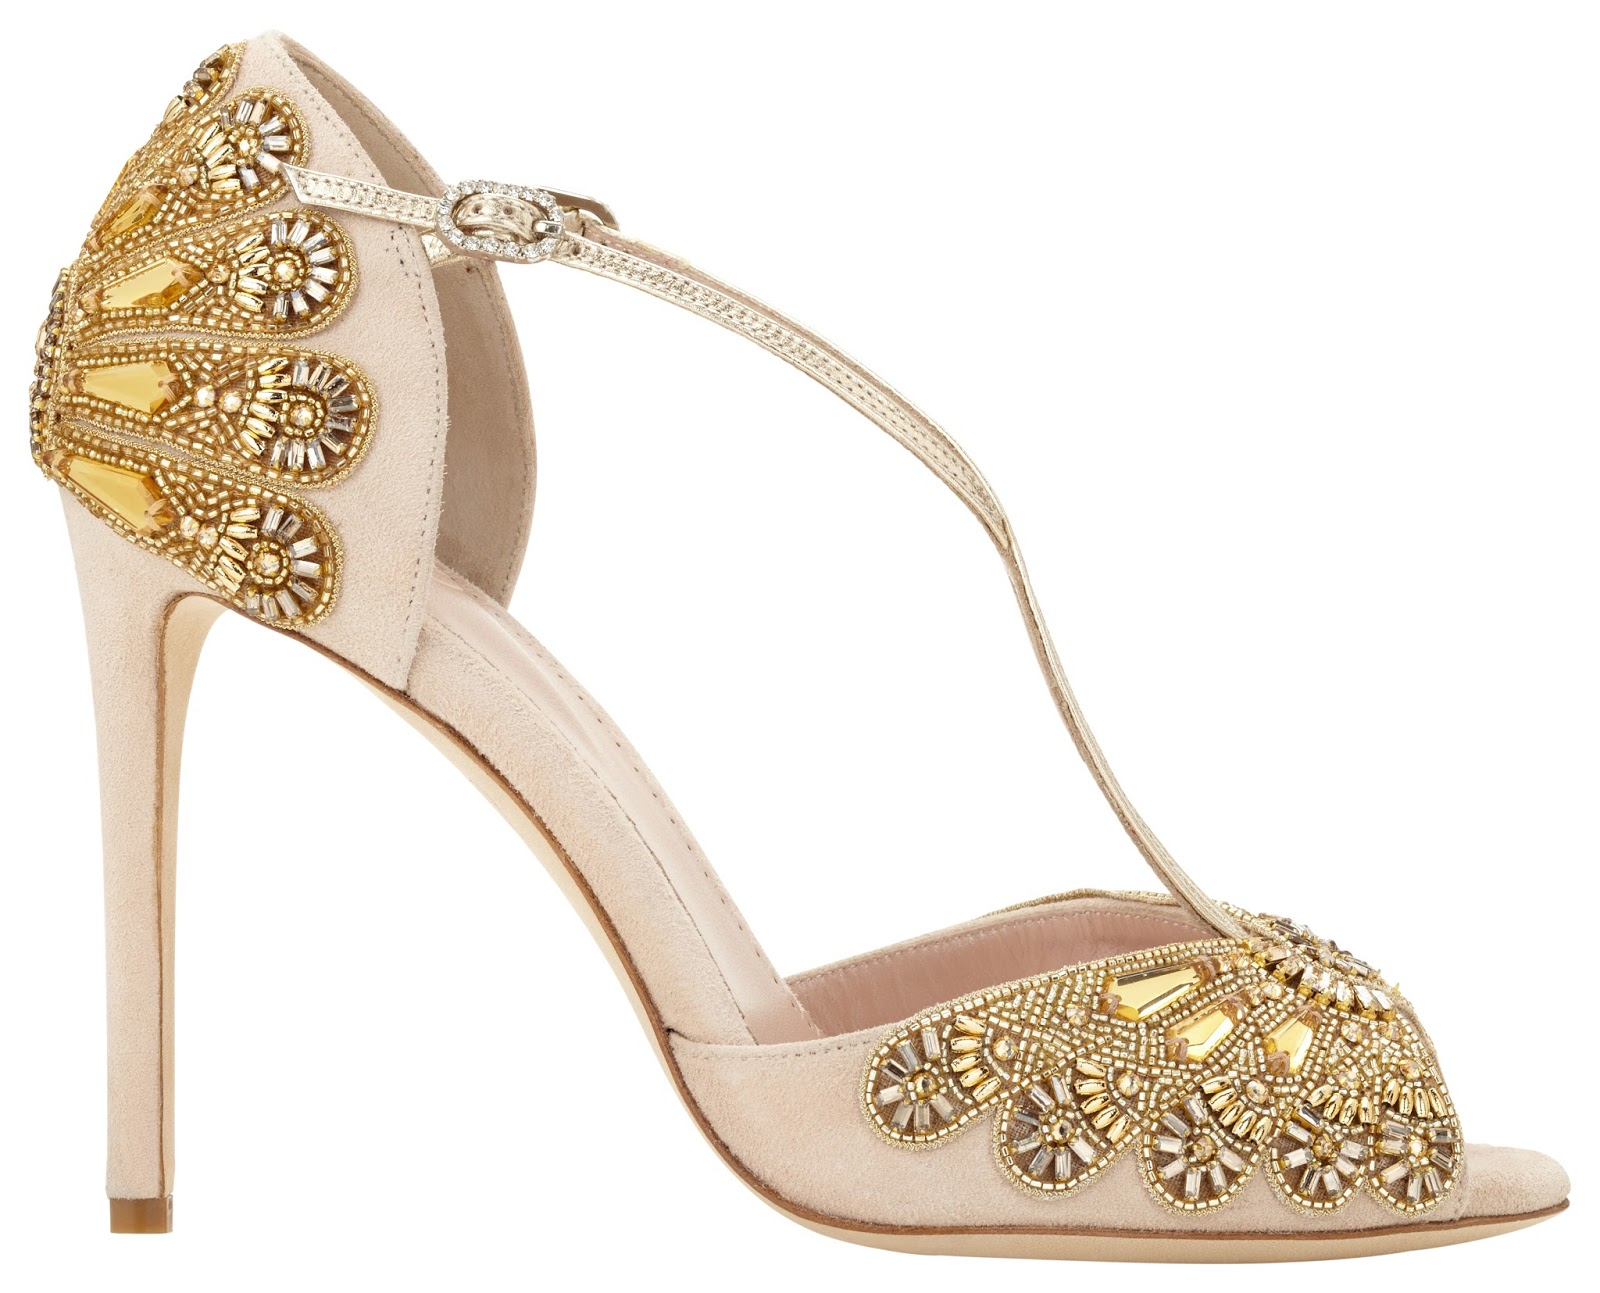 3e47fb31f73 Emmy London s fabulously embellished designs will have you scrapping your  initial shoe budget in an instant (because it IS your wedding day